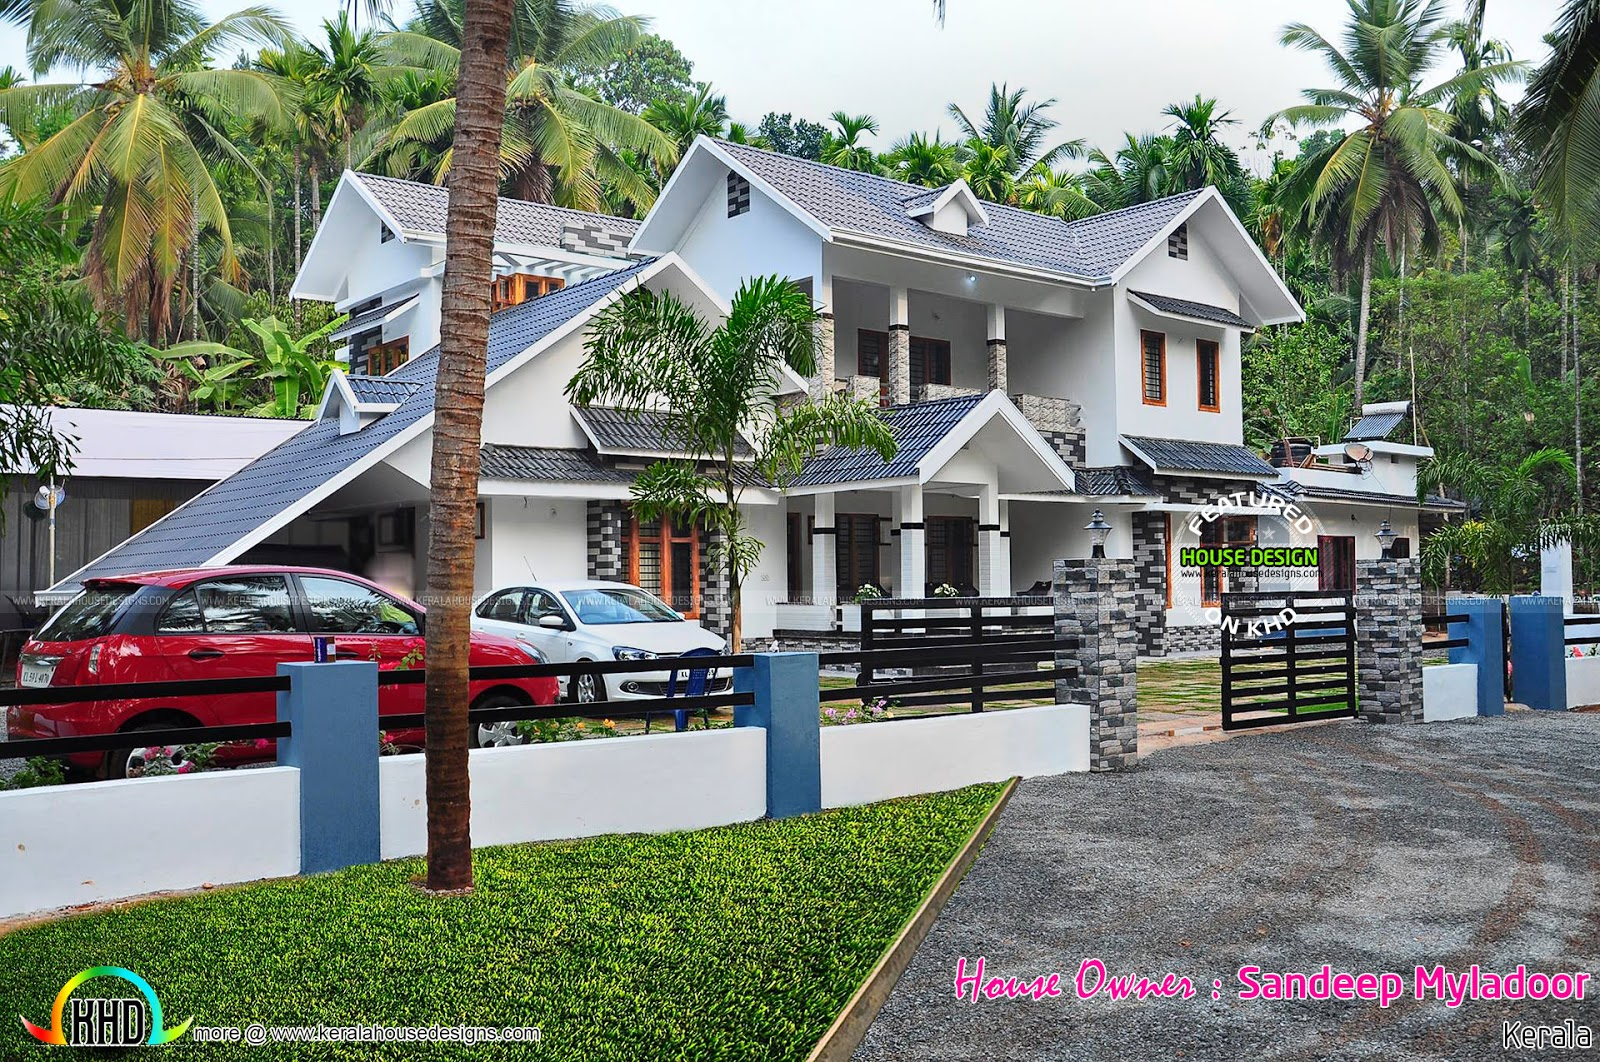 See floor plans read more please follow kerala home design - Facilities In This House Read More Please Follow Kerala Home Design